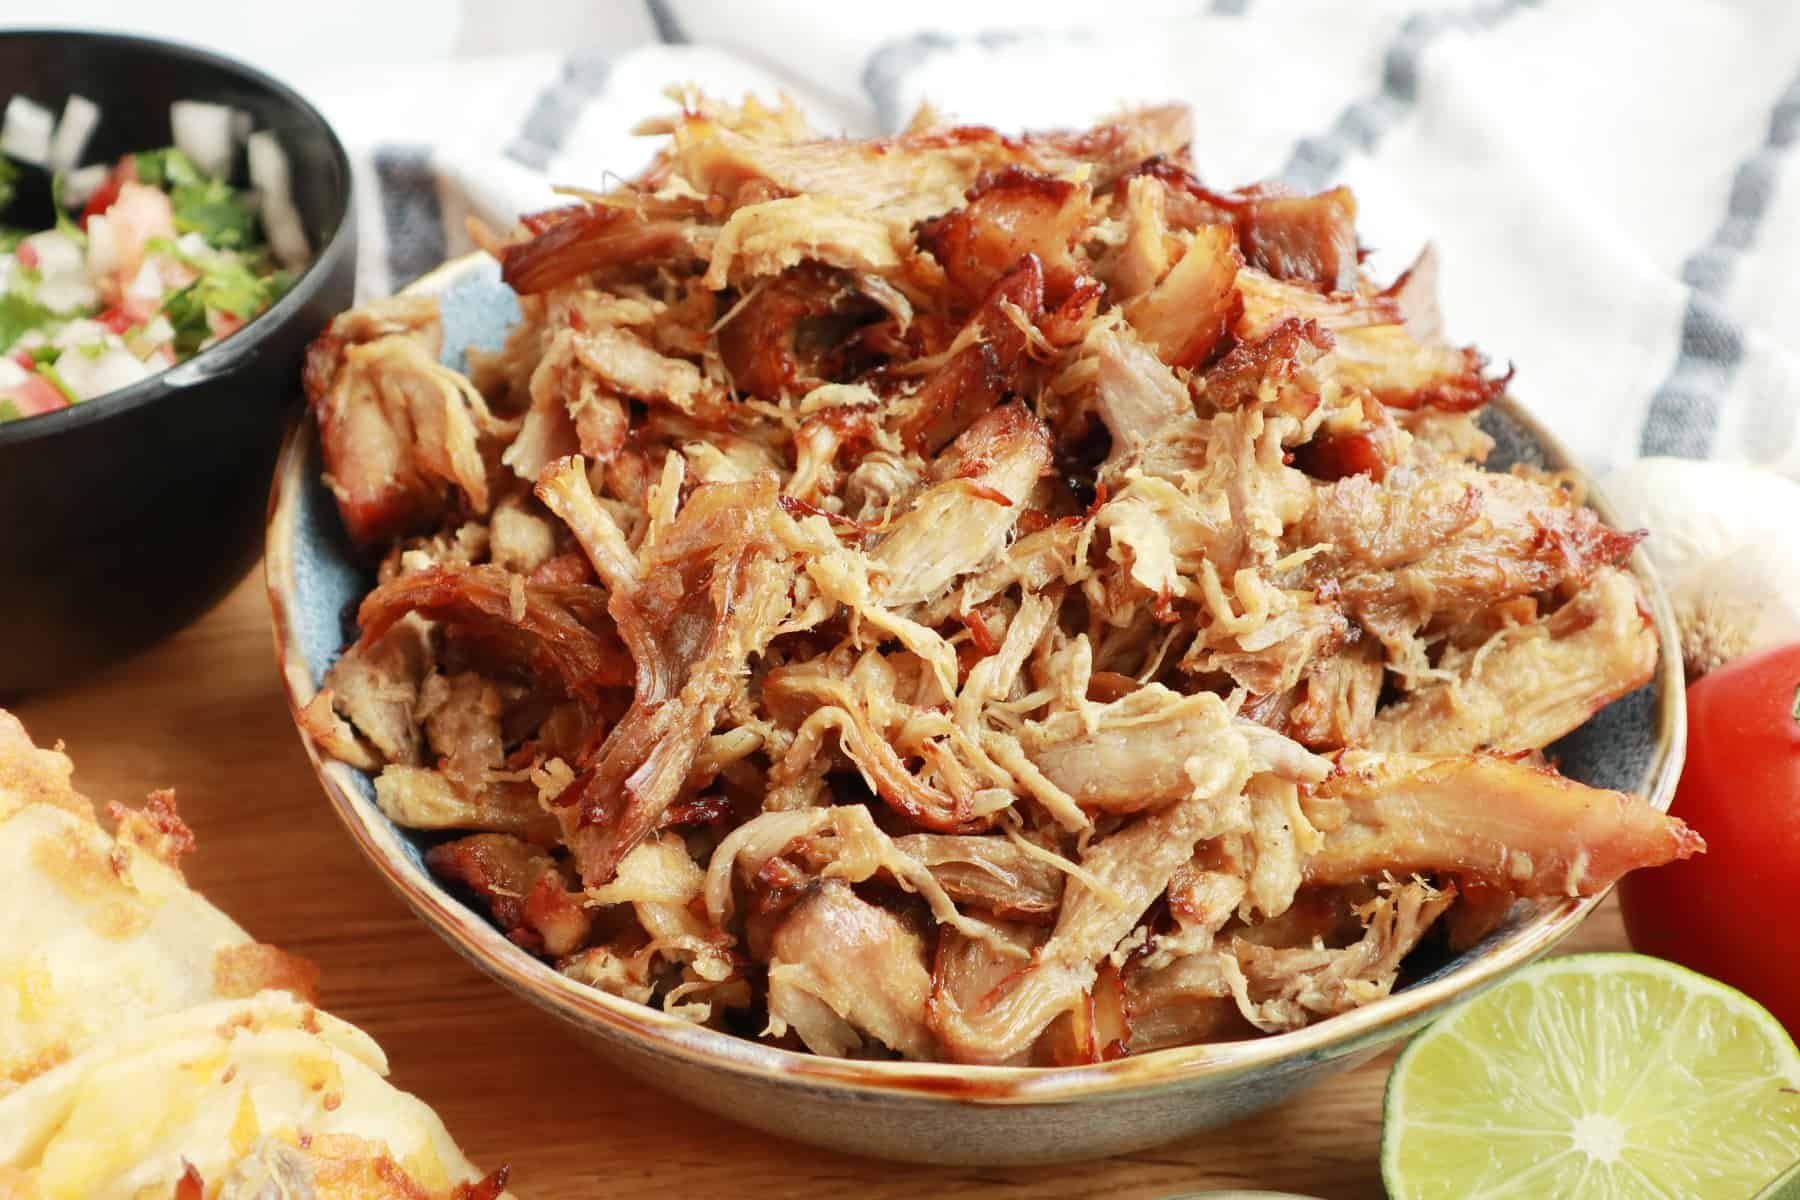 A bowl full of shredded pork carnitas on a table alongside a fresh lime and other toppings.